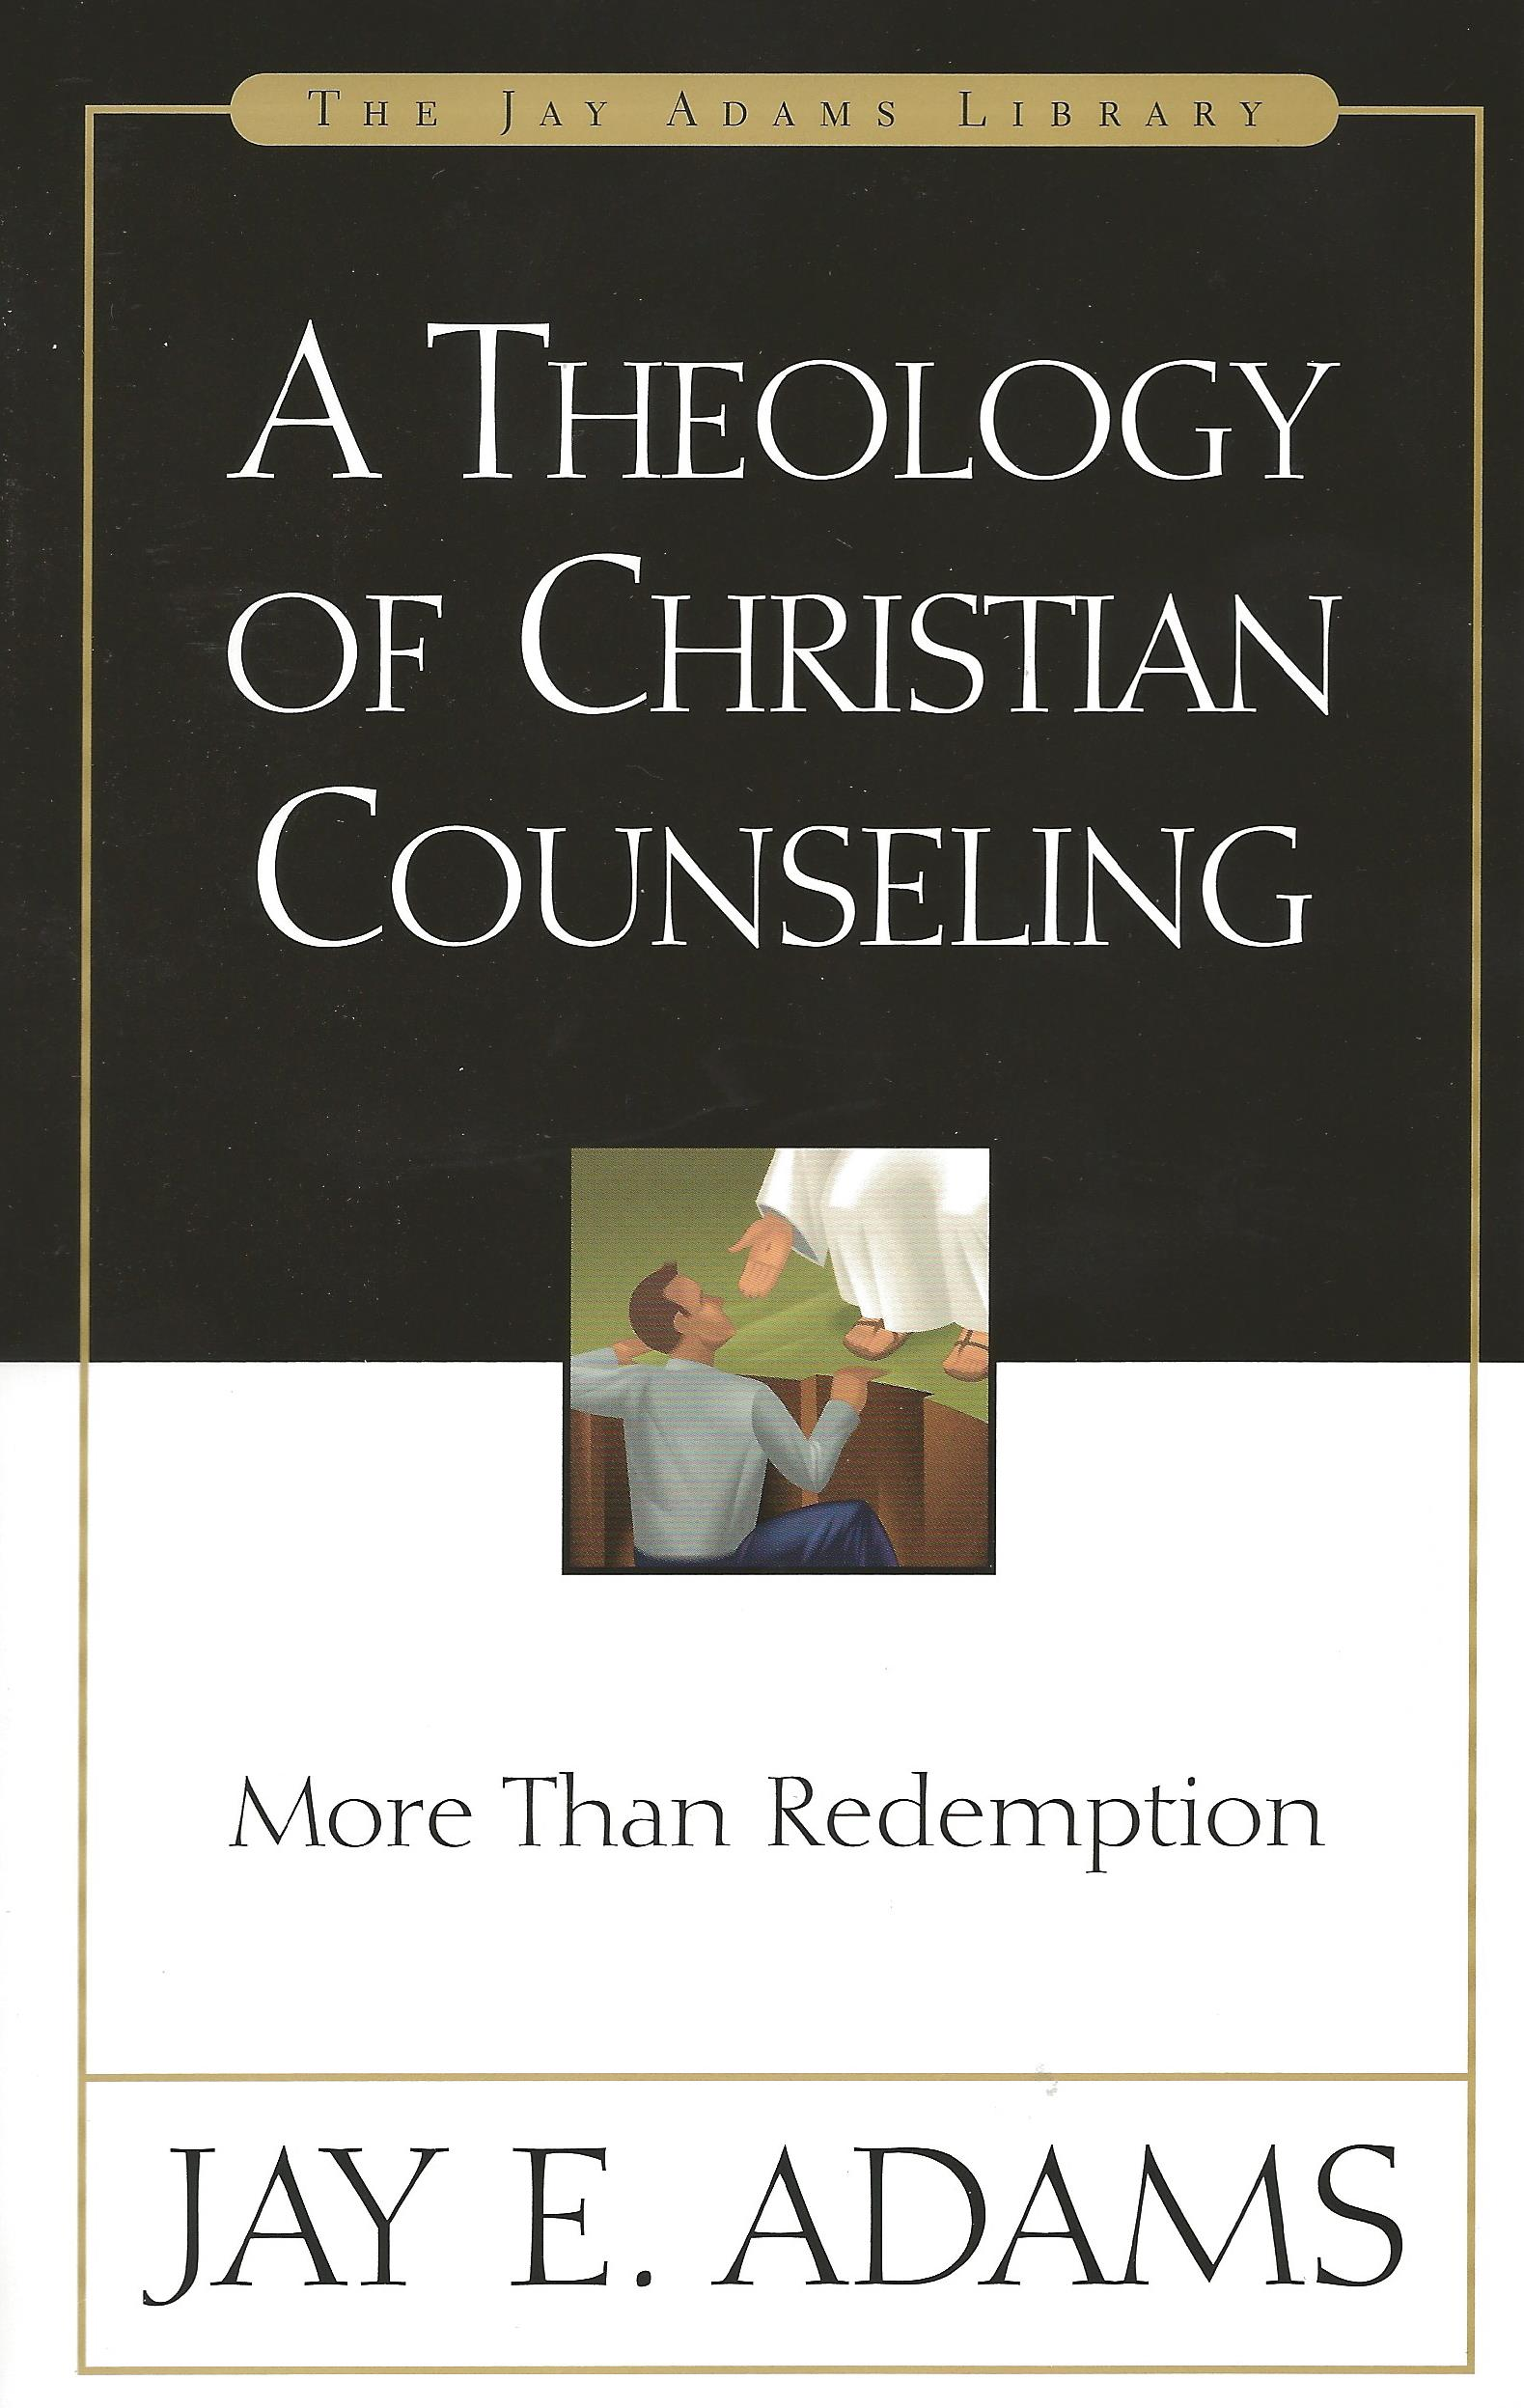 A THEOLOGY OF CHRISTIAN COUNSELING JAY ADAMS